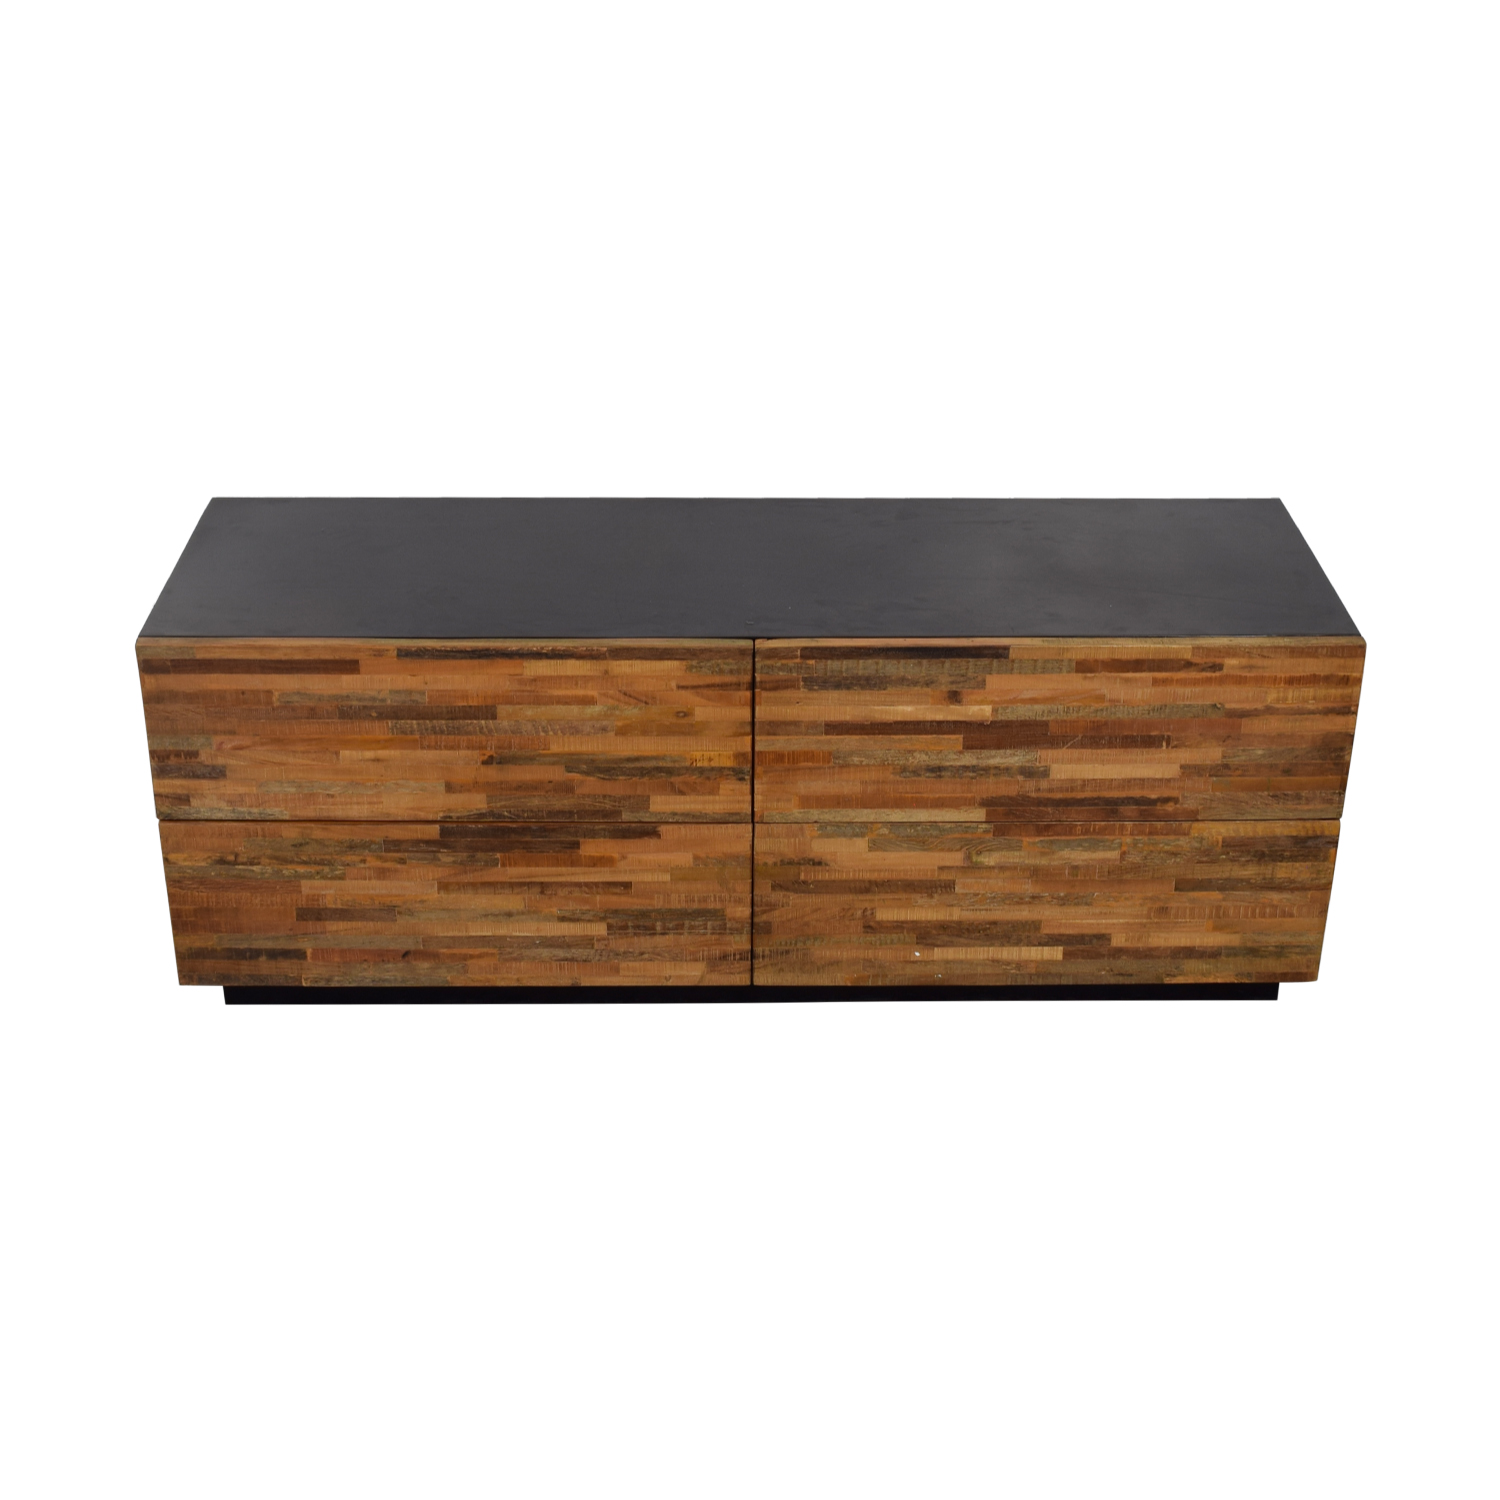 Restoration Hardware Restoration Hardware Rustic Wood Four-Drawer Low Dresser coupon